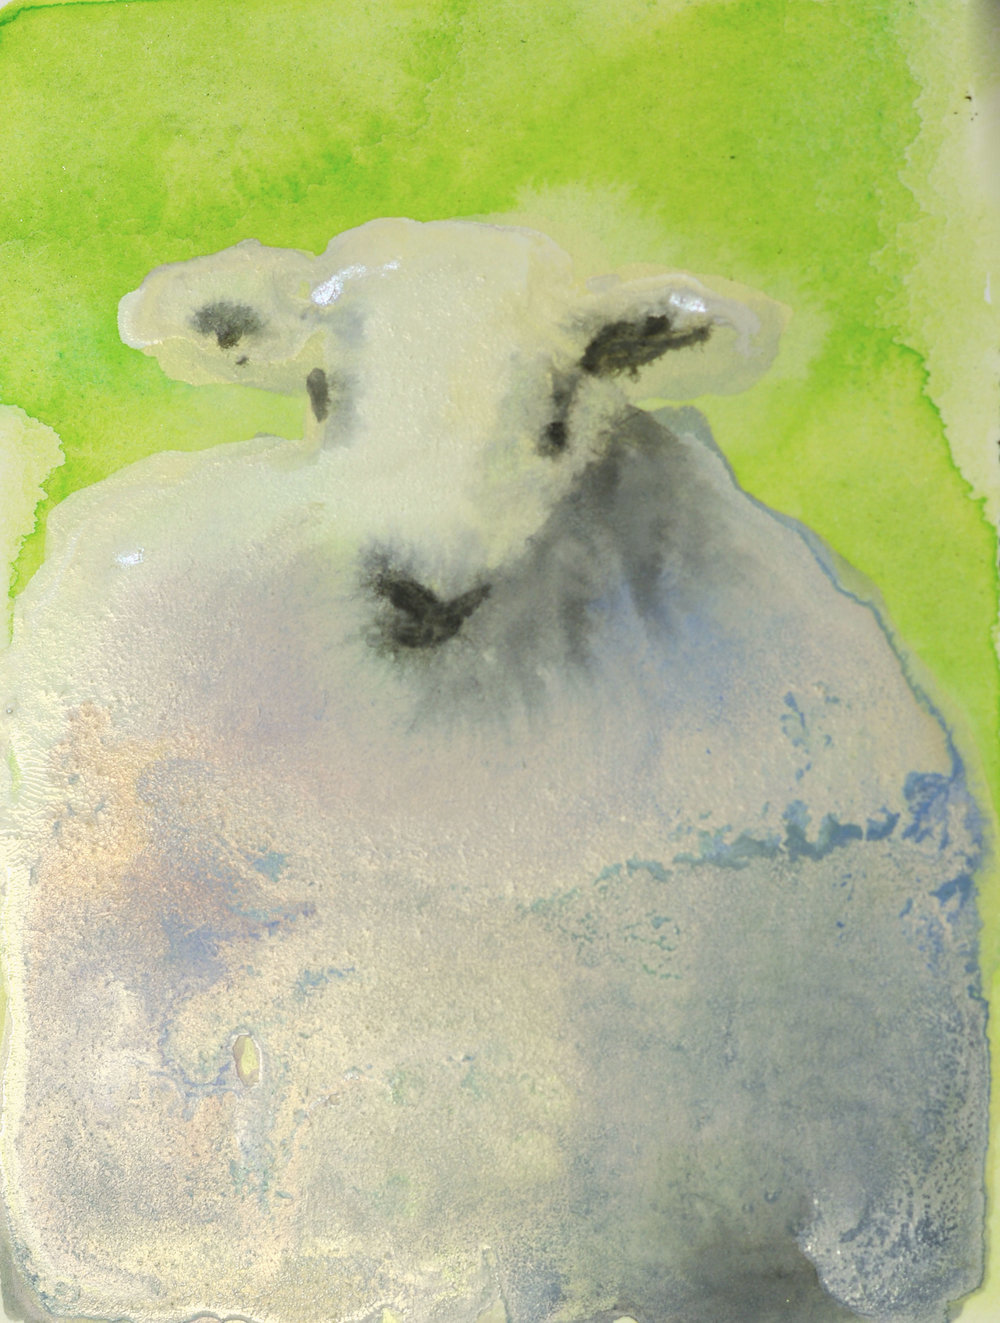 sheep_4x3 inset on 11x7.5 paper.jpg